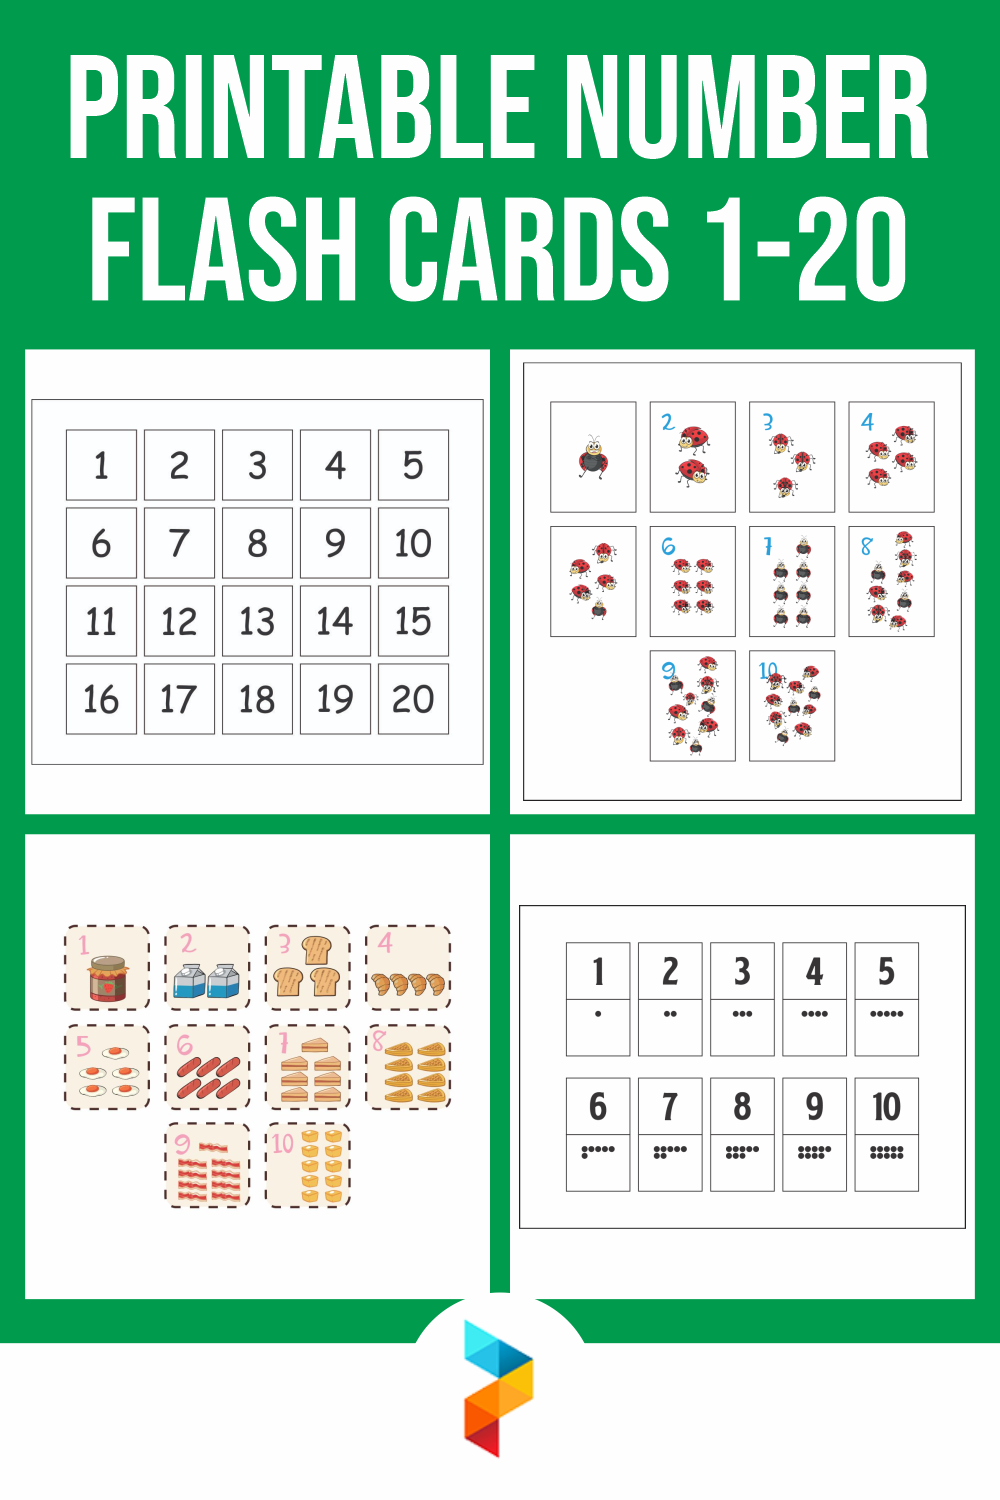 Printable Number Flash Cards 1-20